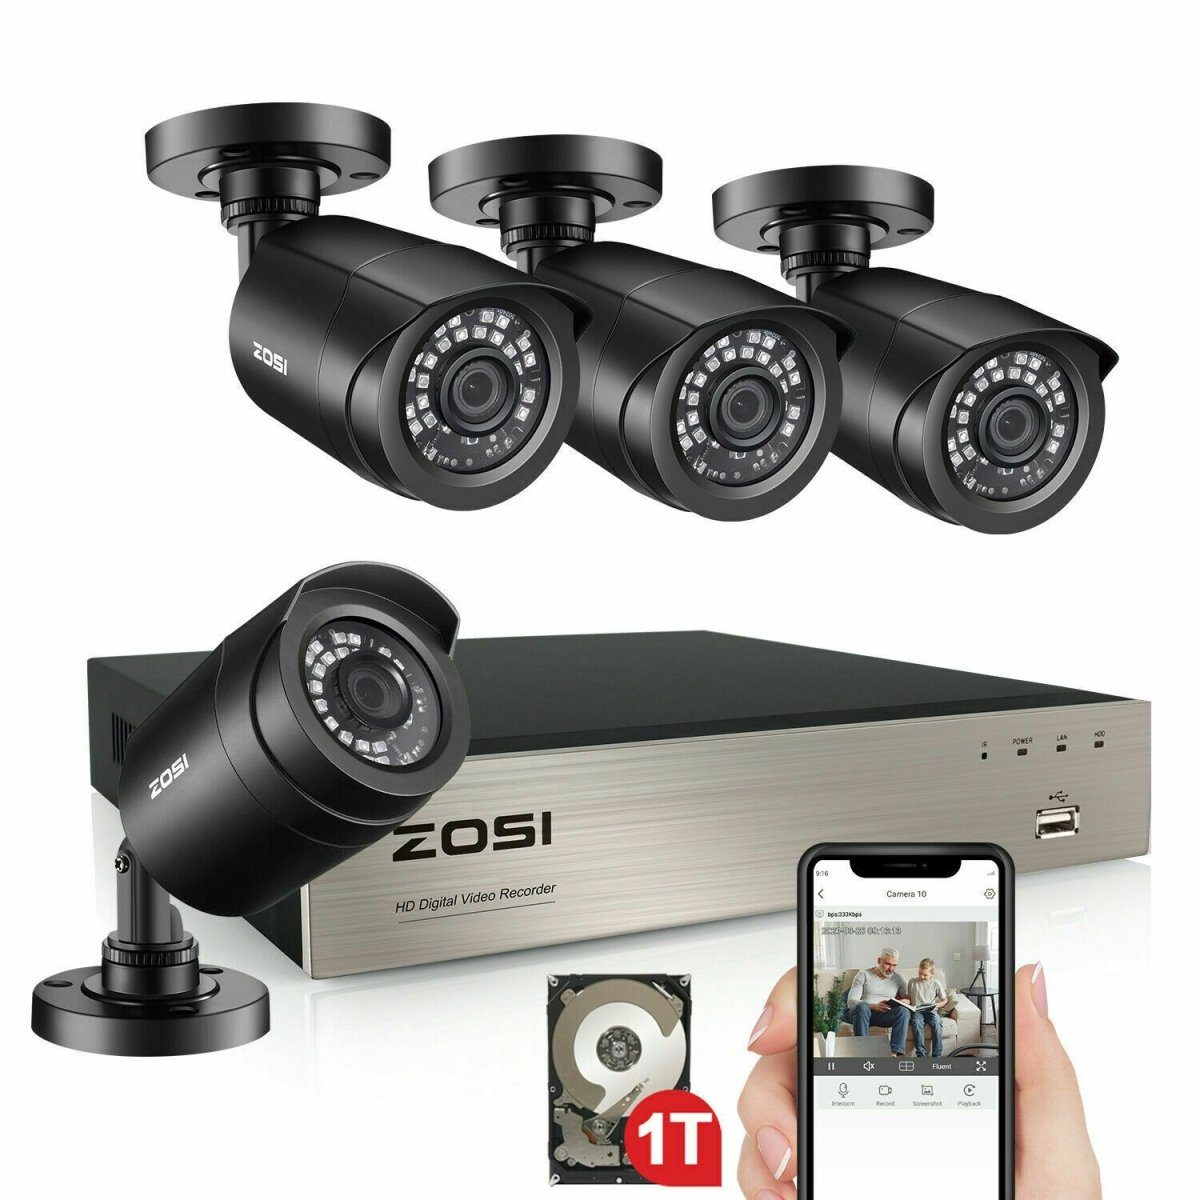 ZOSI H.265+ 8 Channel Outdoor Security Camera - Fix Or Cell Now Device Shop